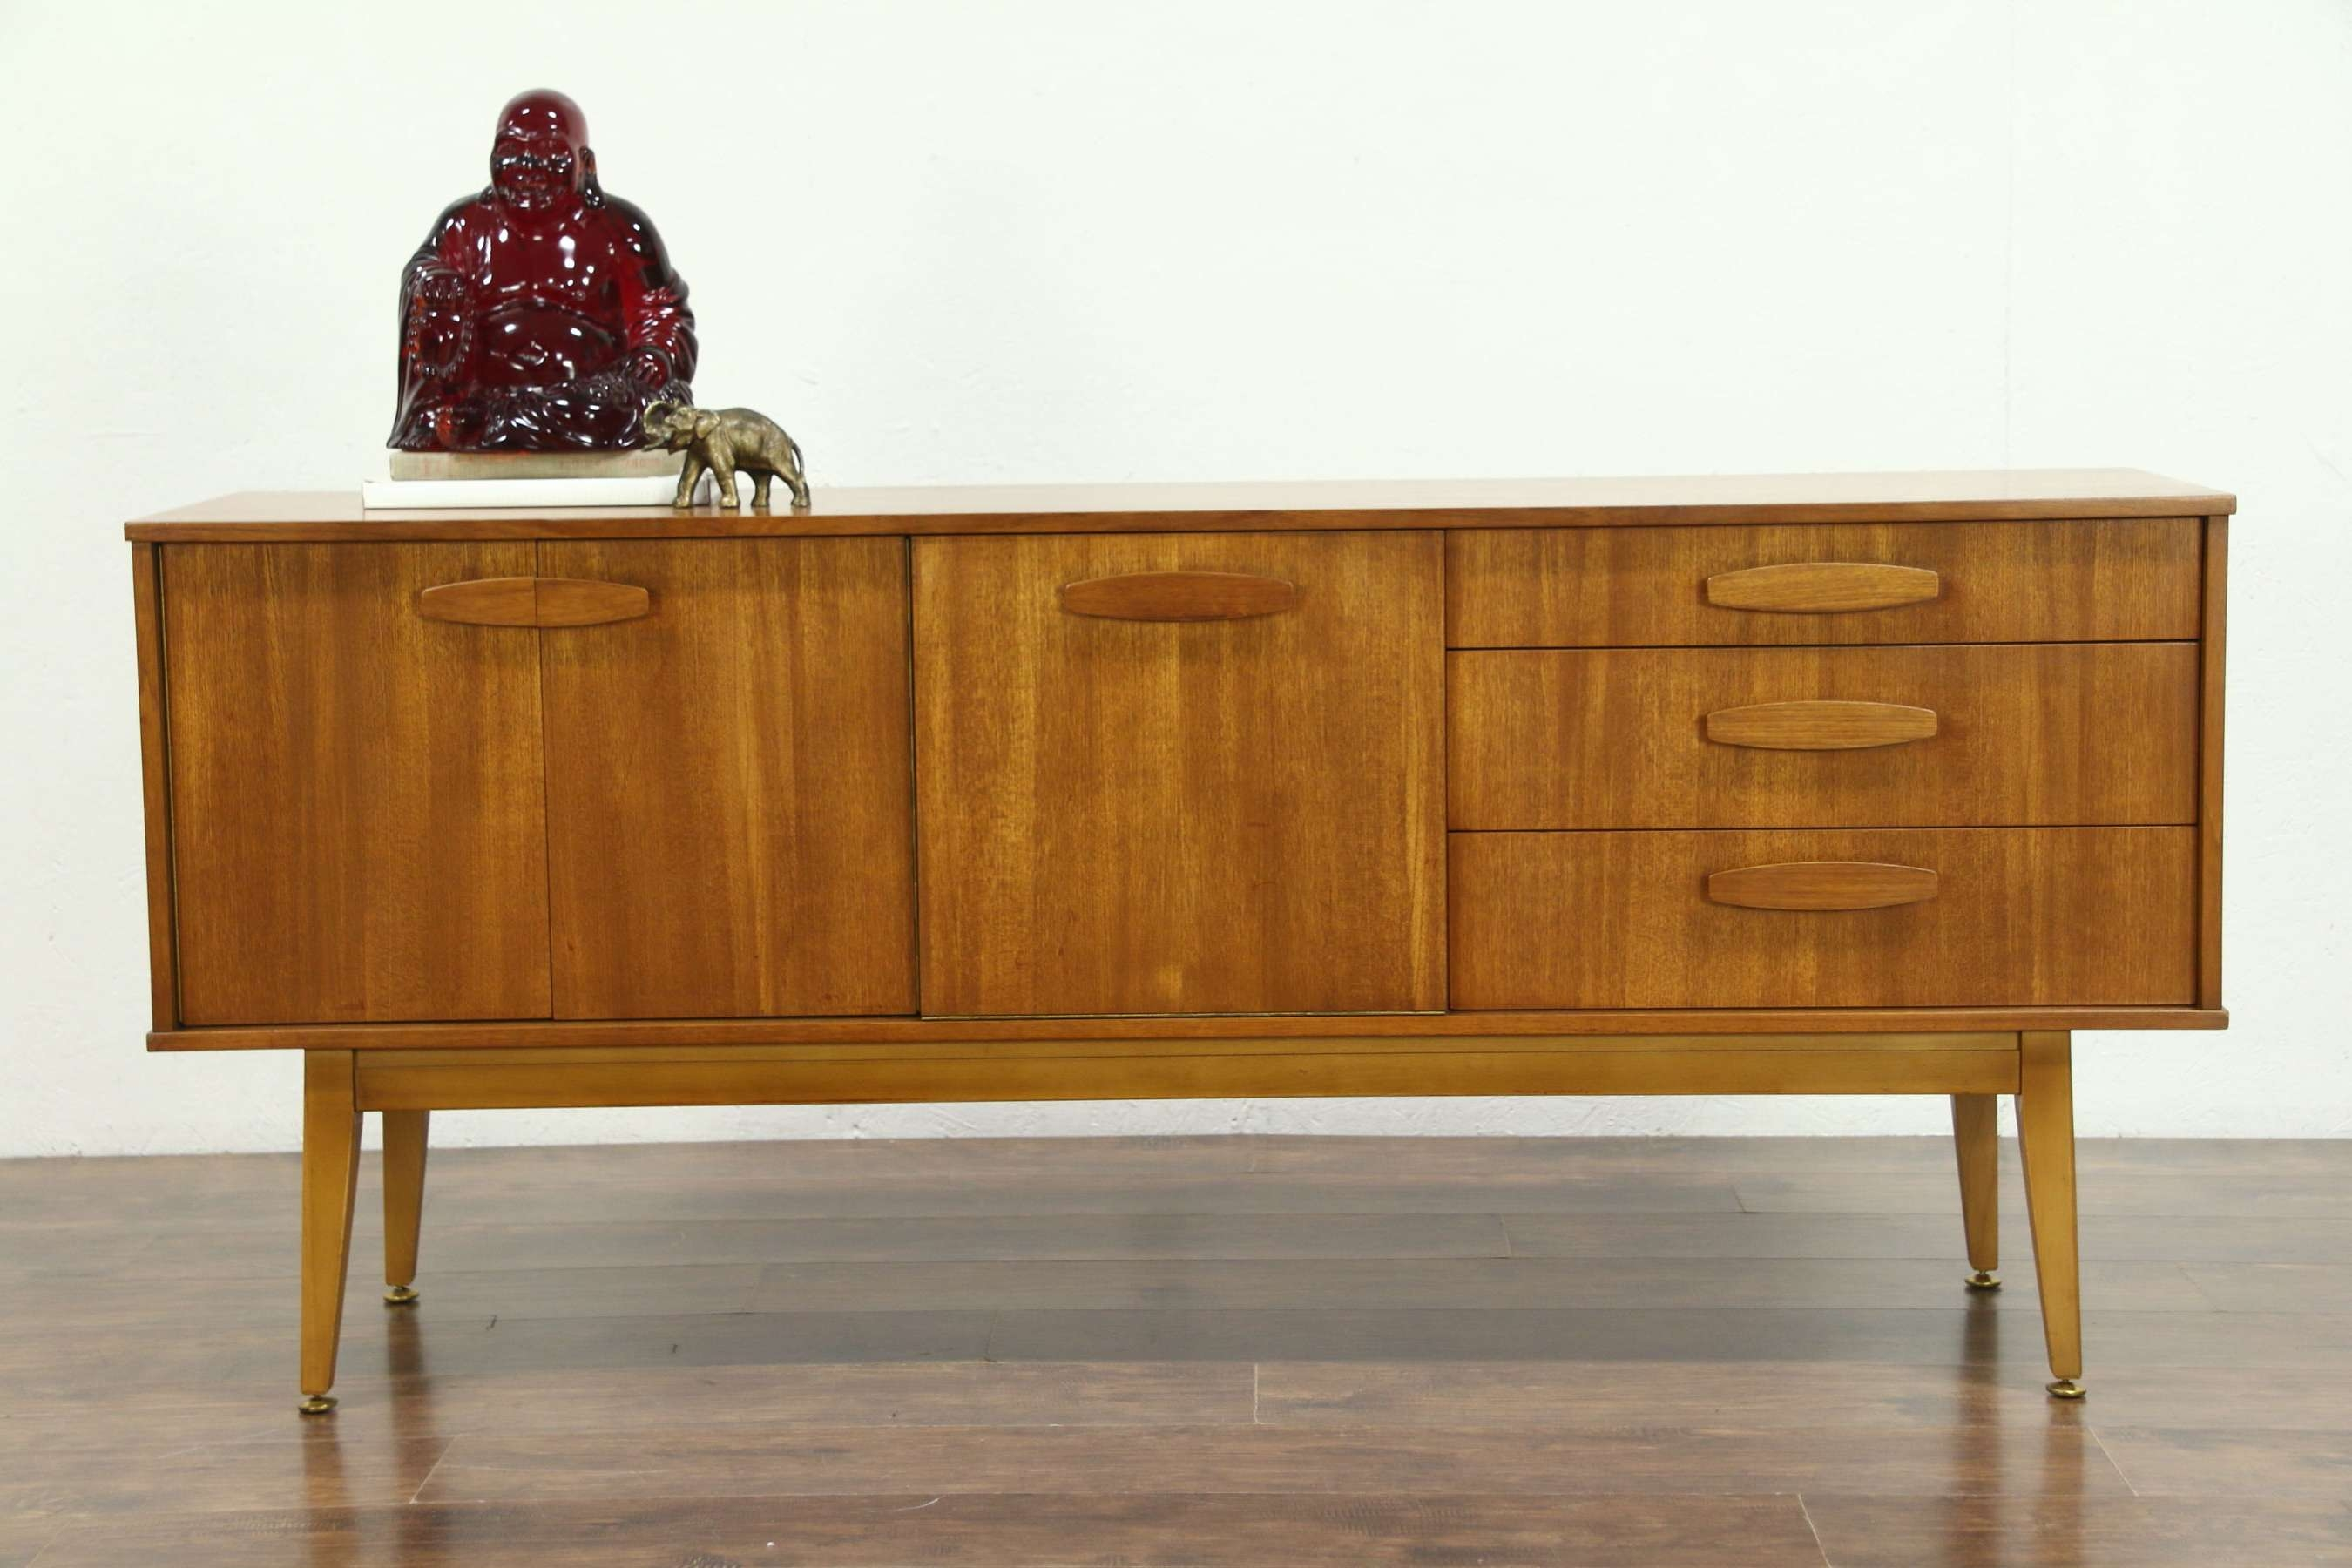 Midcentury Modern 1960's Teak Sideboard, Bar Cabinet Or Tv Console Within Midcentury Sideboards (View 13 of 20)